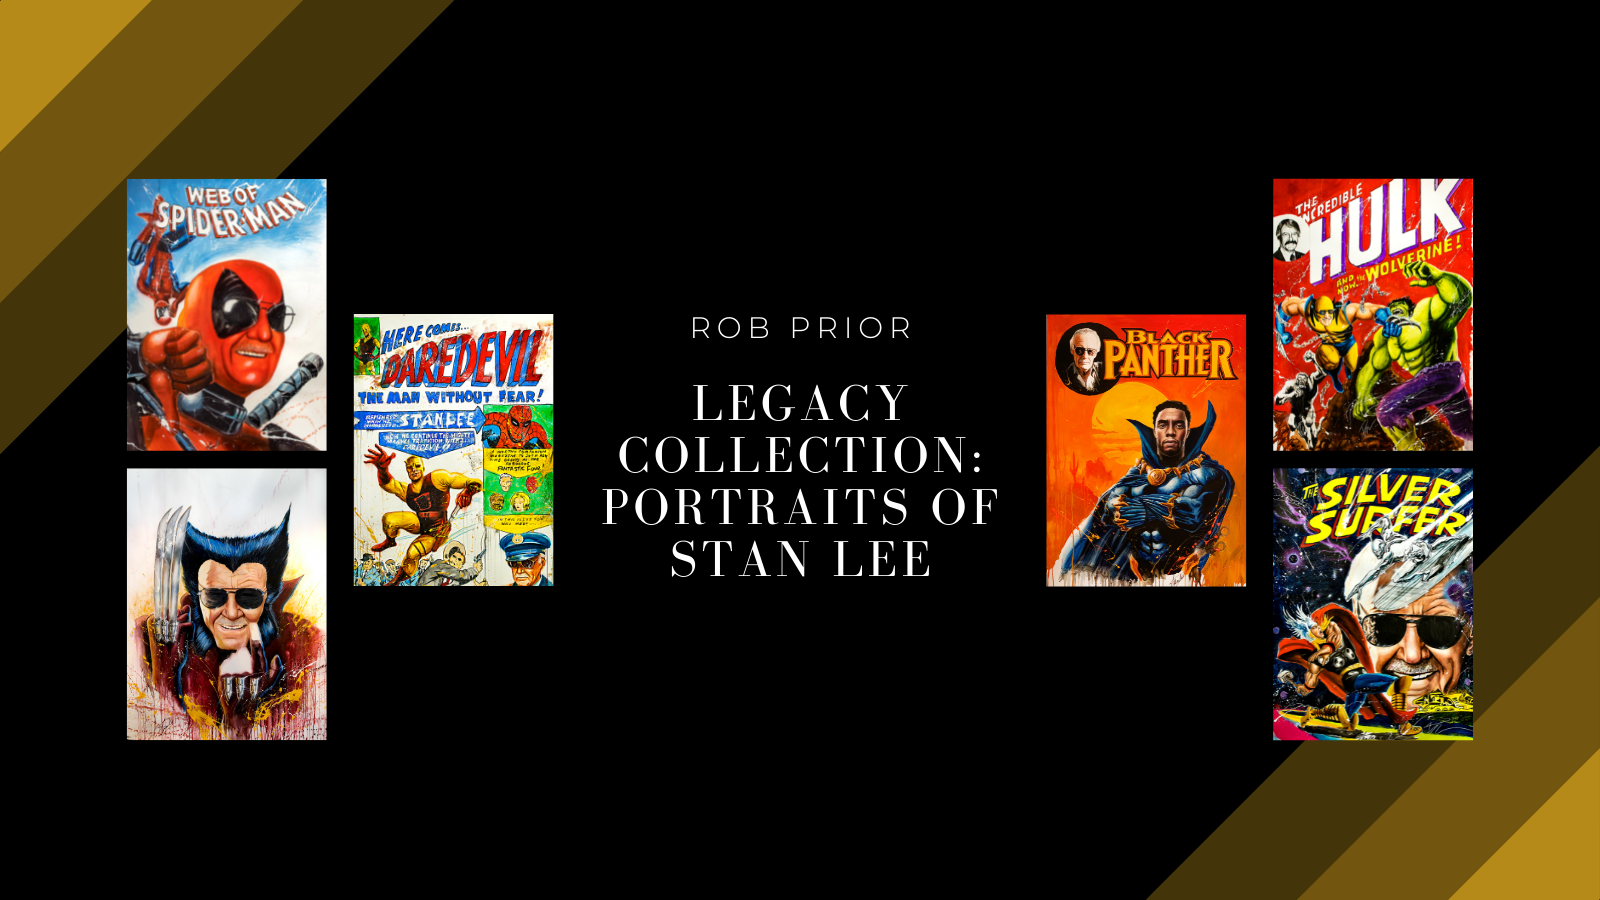 The Legacy Collection: Portraits of Stan Lee by Rob Prior